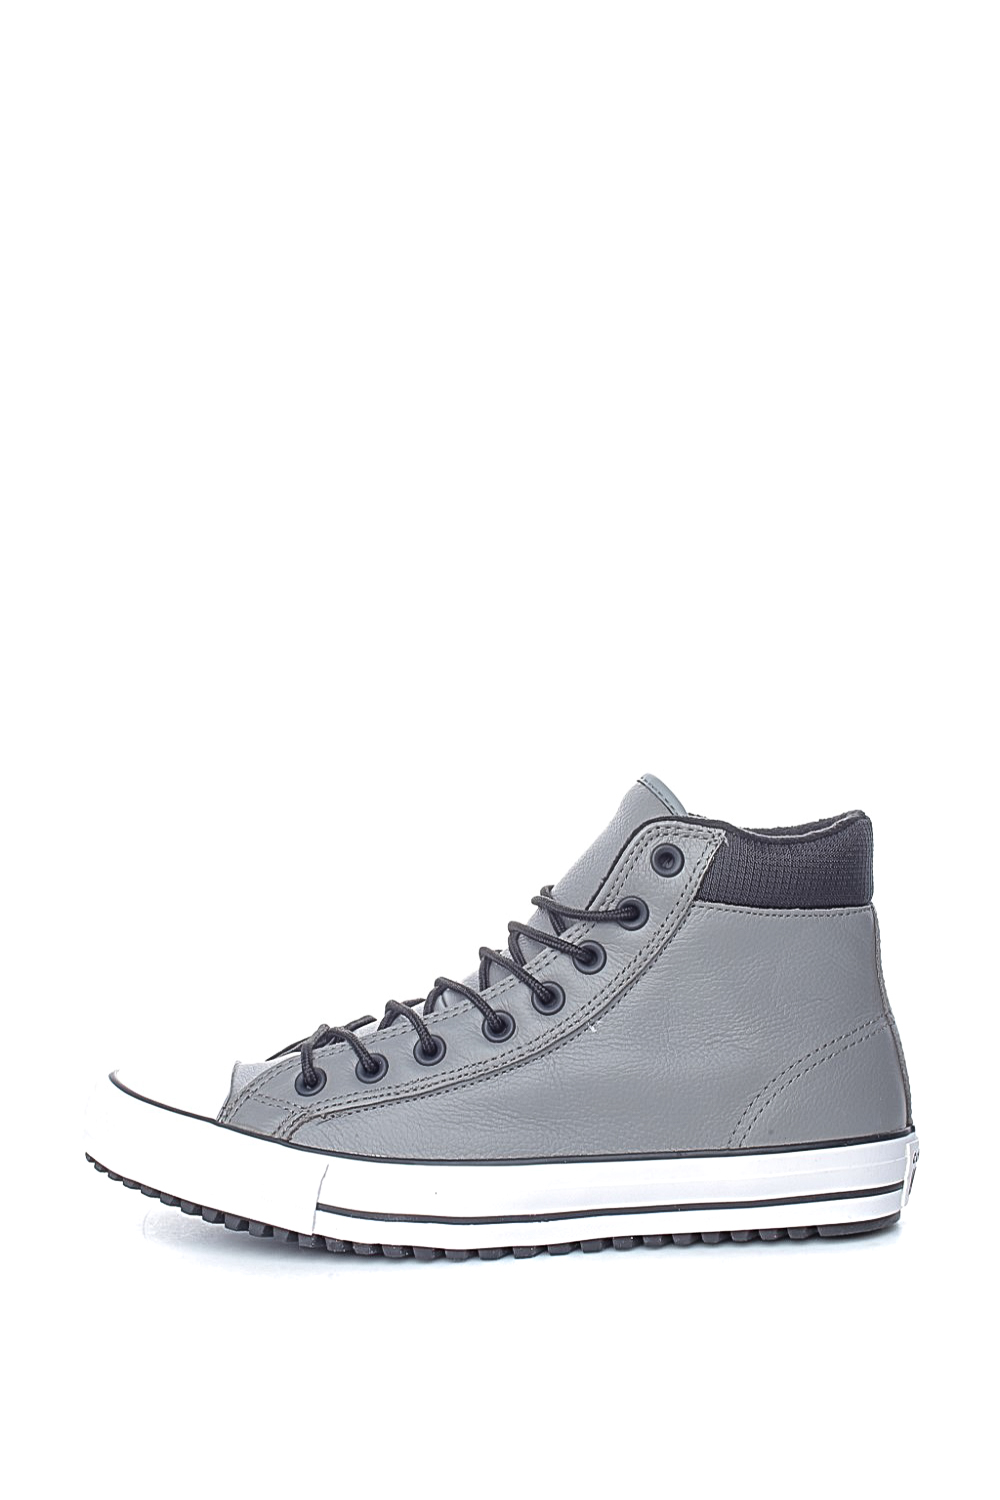 d2c4774598d CONVERSE - Ανδρικά μποτάκια CHUCK TAYLOR ALL STAR PC γκρι - Roe ...